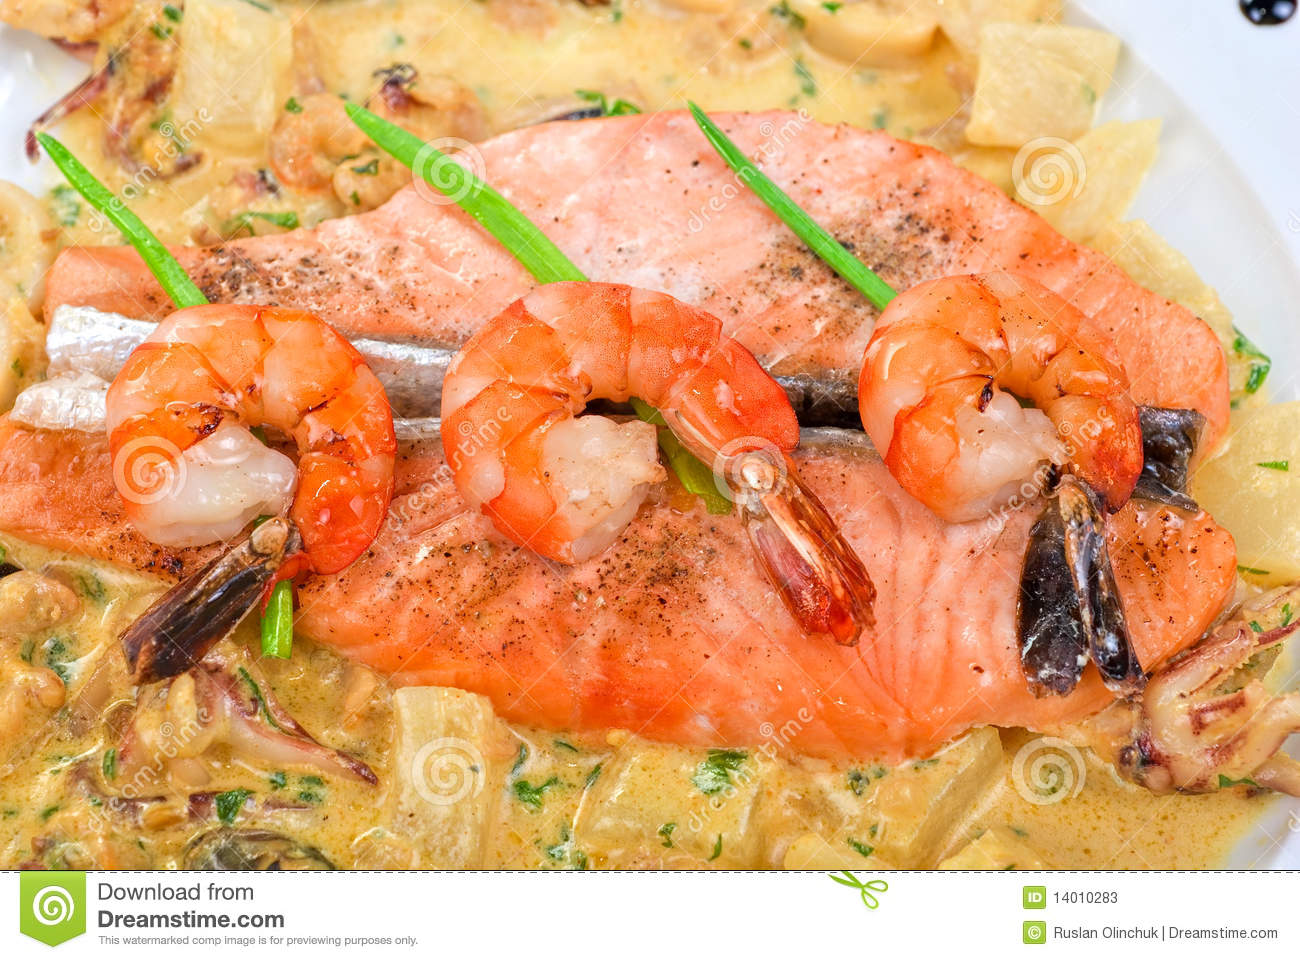 Salmon fish and seafood stock photos image 14010283 for Fish and seafood